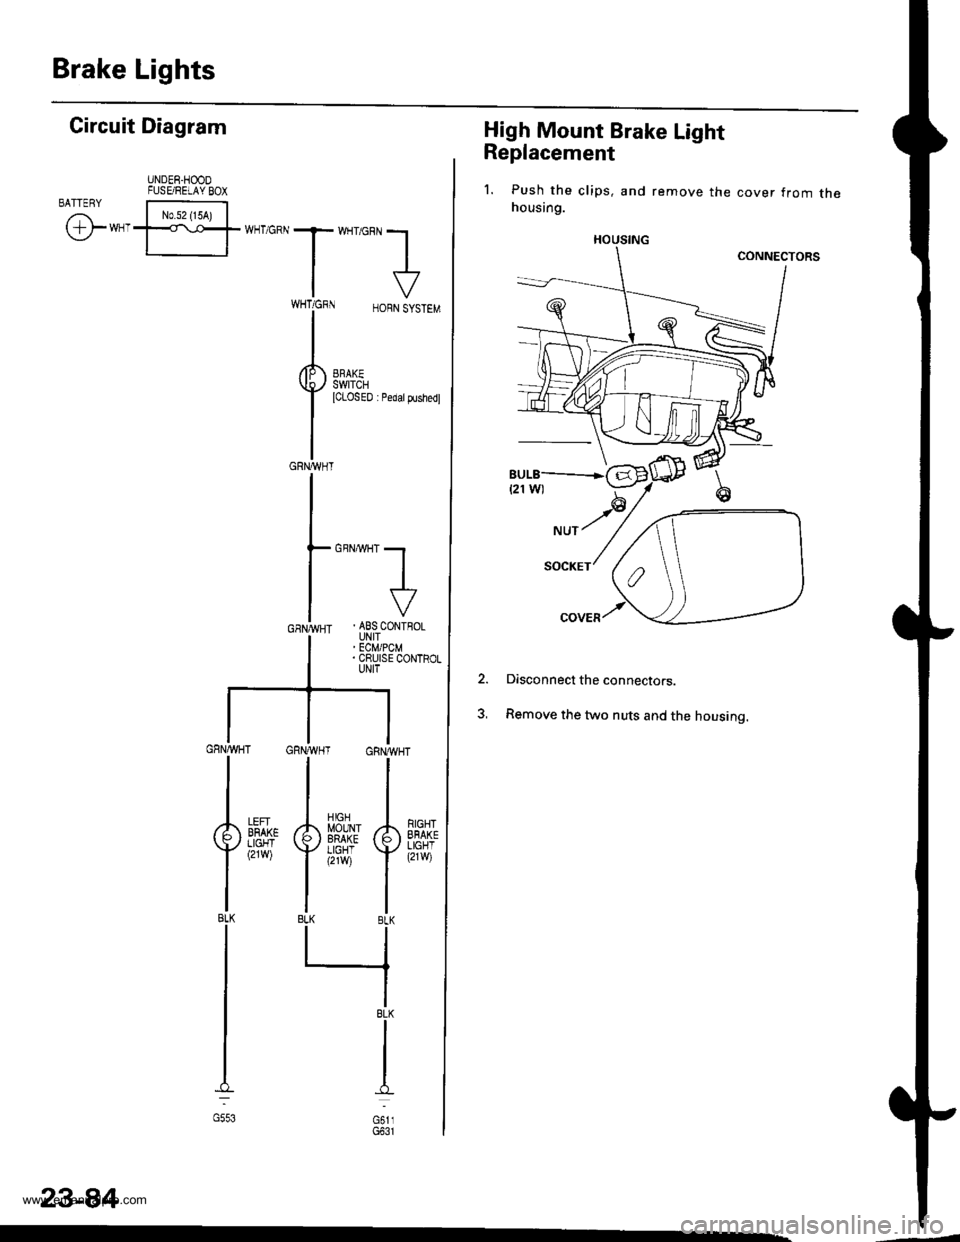 Abs Honda Cr V 1998 Rd1 Rd3 1g Workshop Manual Cruise Control Diagram Page